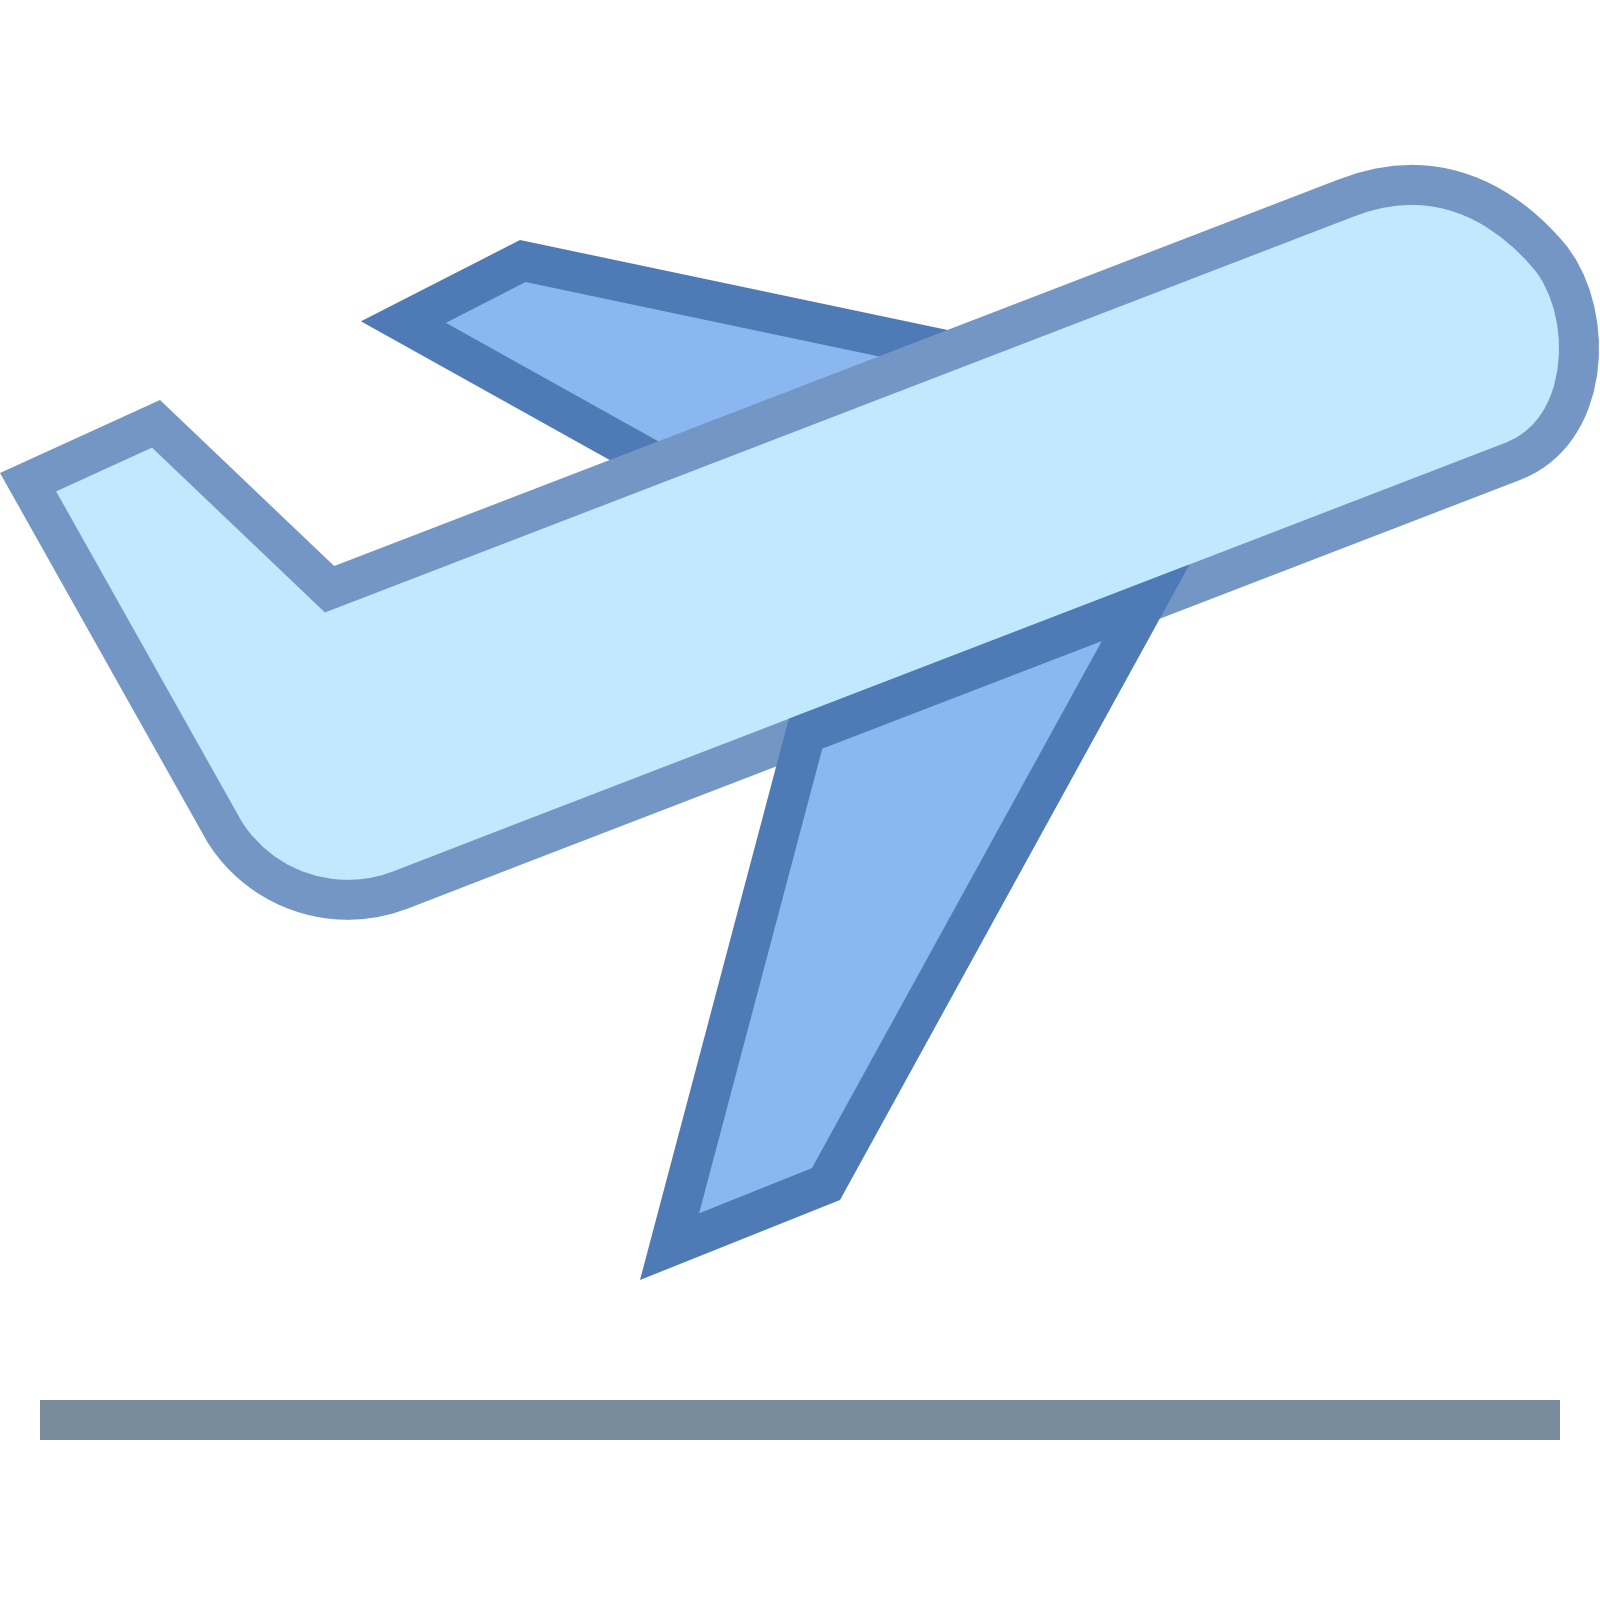 collection of plane. Clipart airplane departure